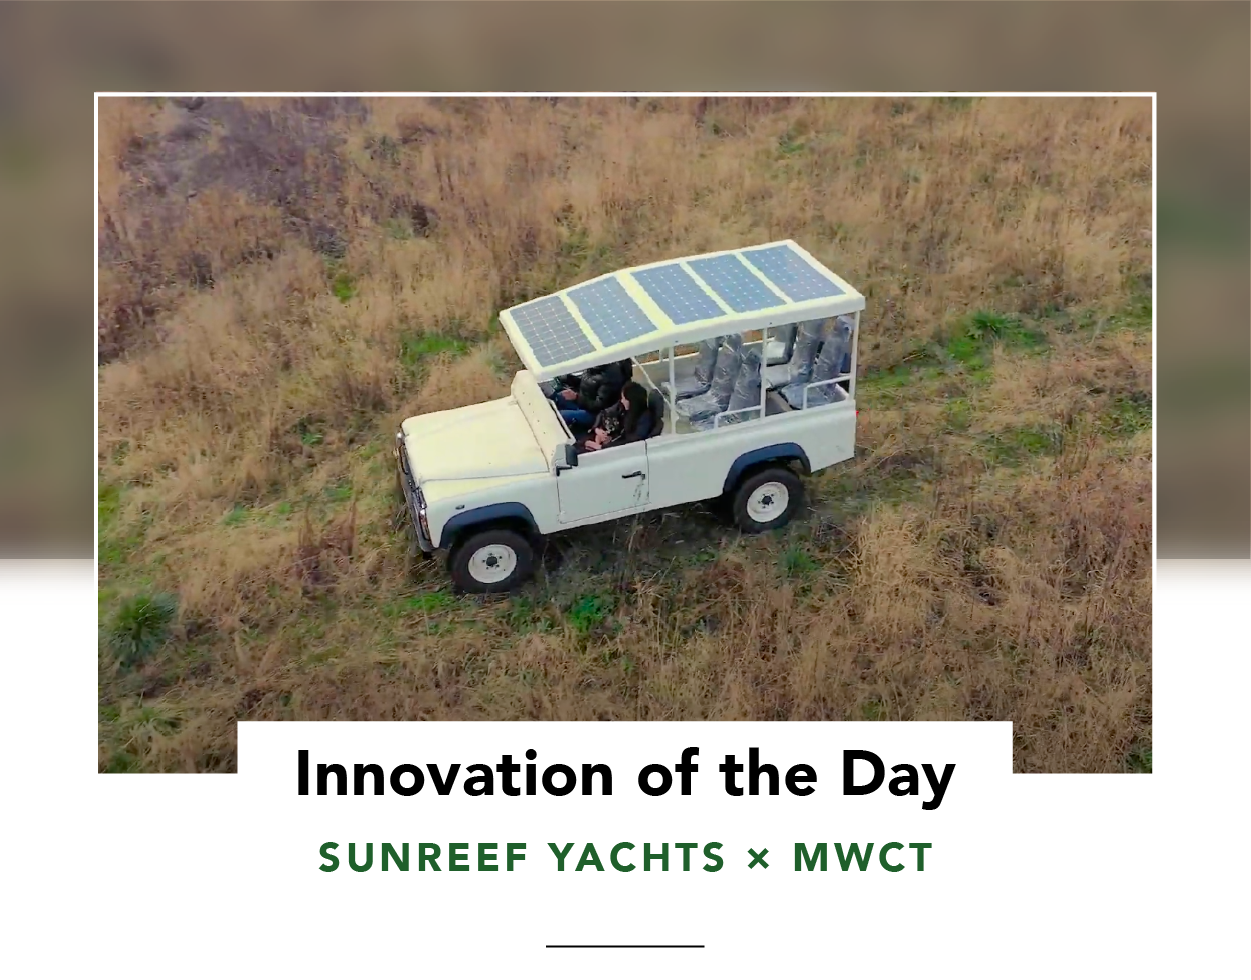 Electric safari vehicle by Sunreef Yachts, viewed from above and showing solar panels on roof